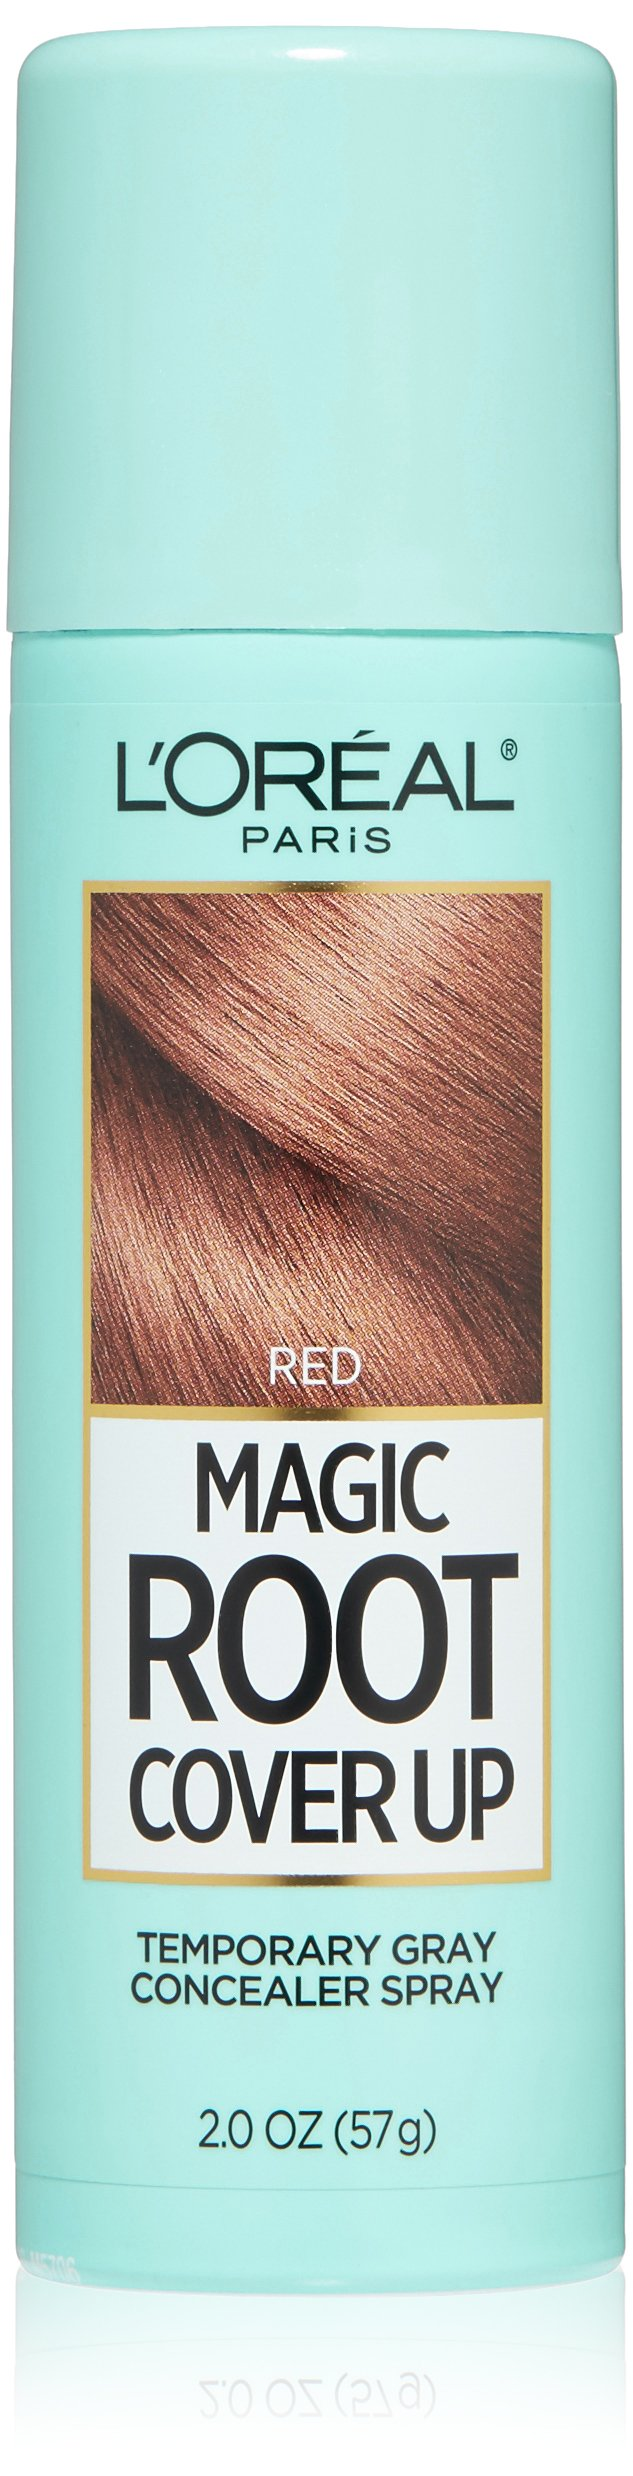 L'Oreal Paris Magic Root Cover Up Gray Concealer Spray, Red, 2 oz.(Packaging May Vary)